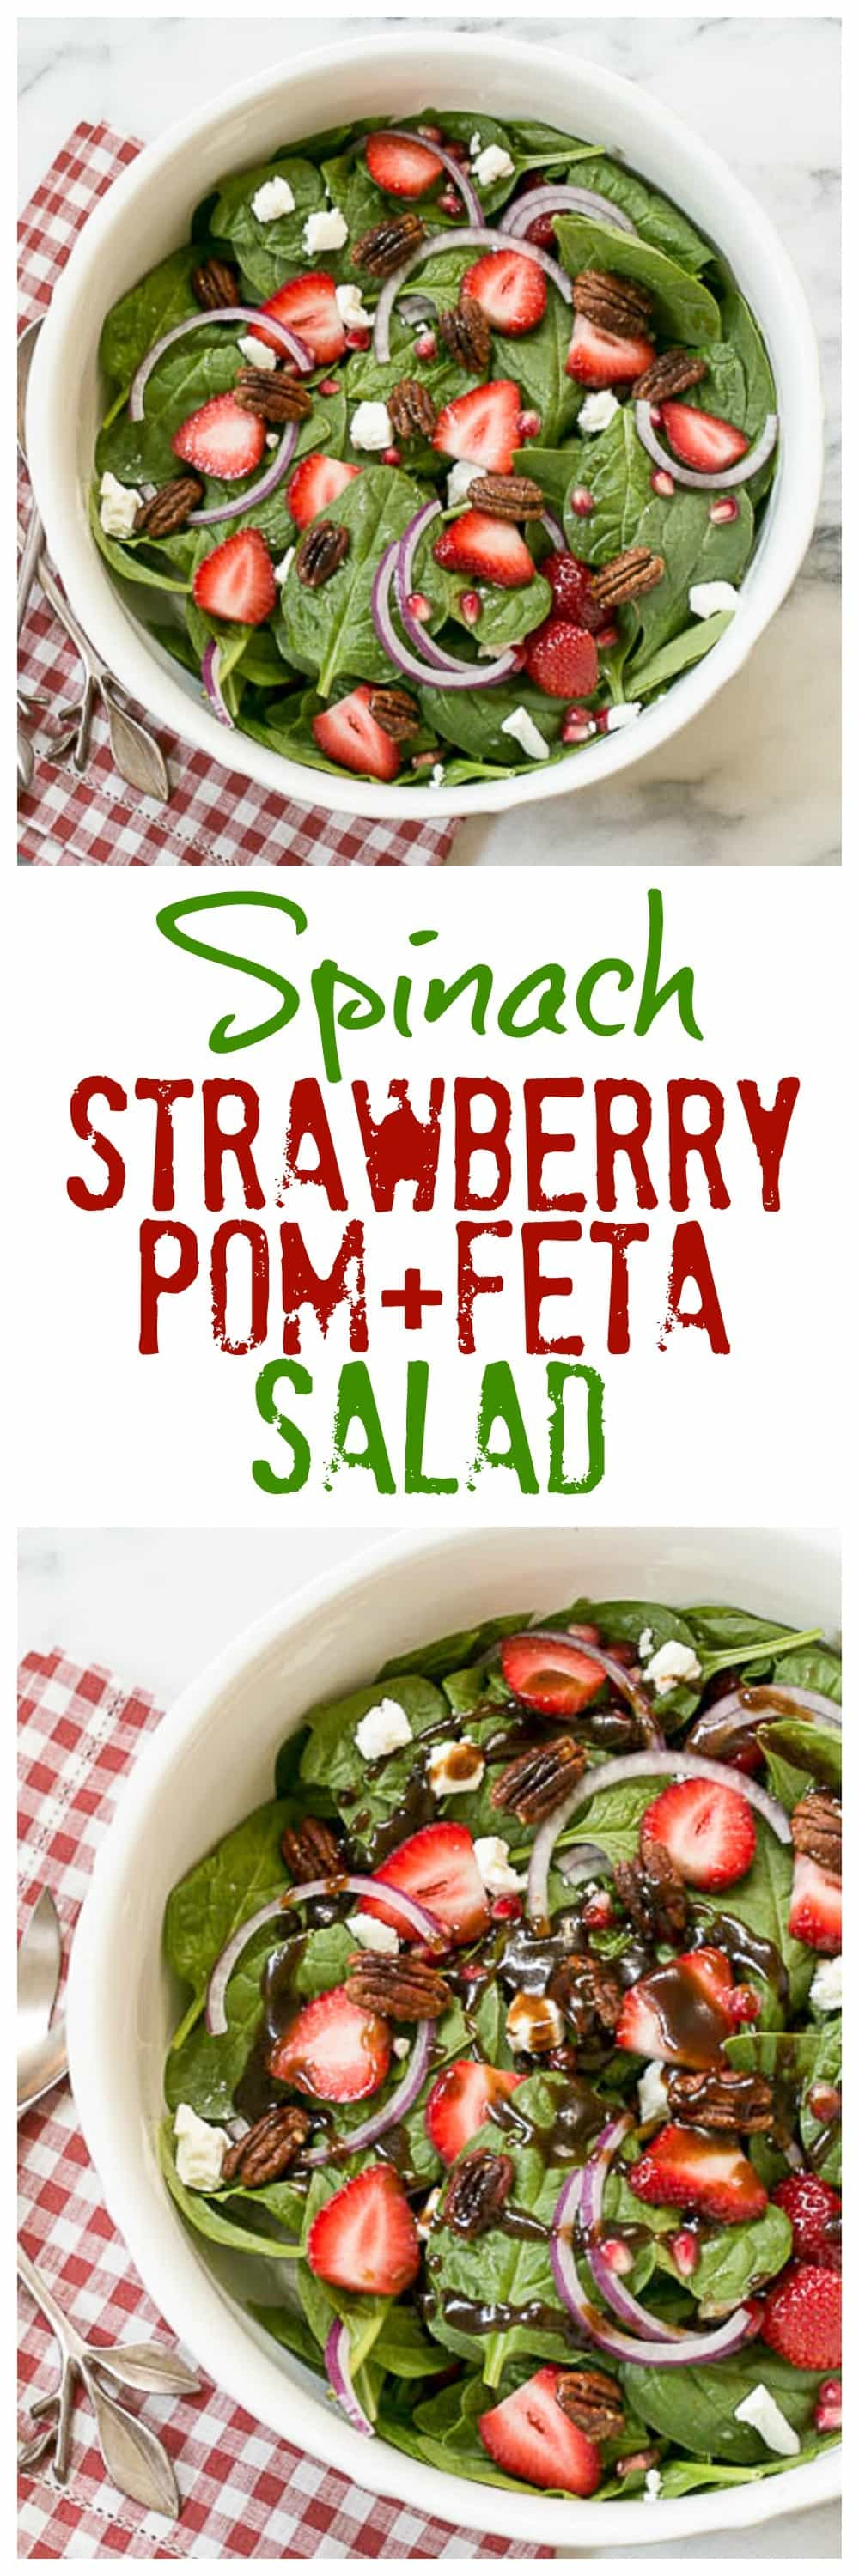 Spinach, Strawberry, Pomegranate, Feta Salad with the BEST balsamic vinaigrette - a scrumptious winter salad #balsamicvinaigrette #spinachsalad #pomegratates